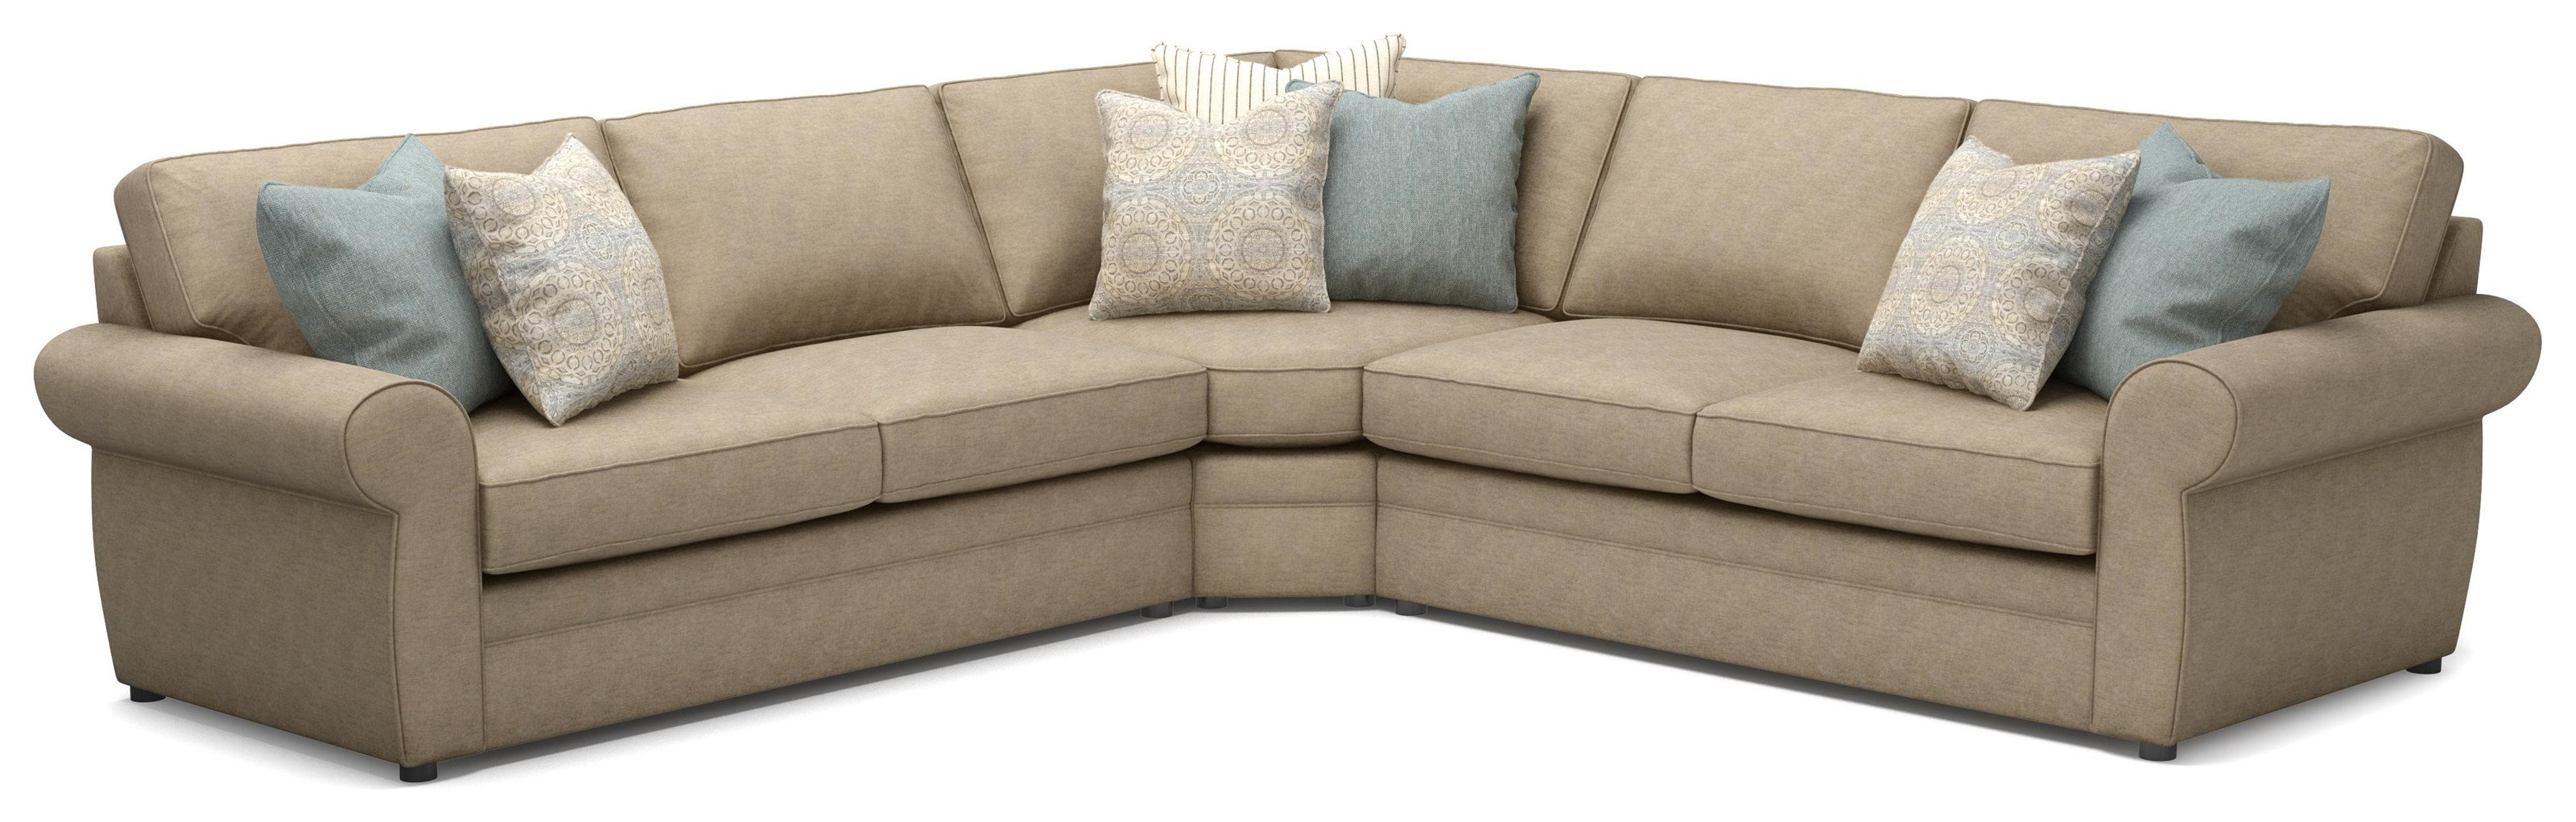 554 PAIGE 3 PIECE SECTIONAL by Sunset Home at Walker's Furniture